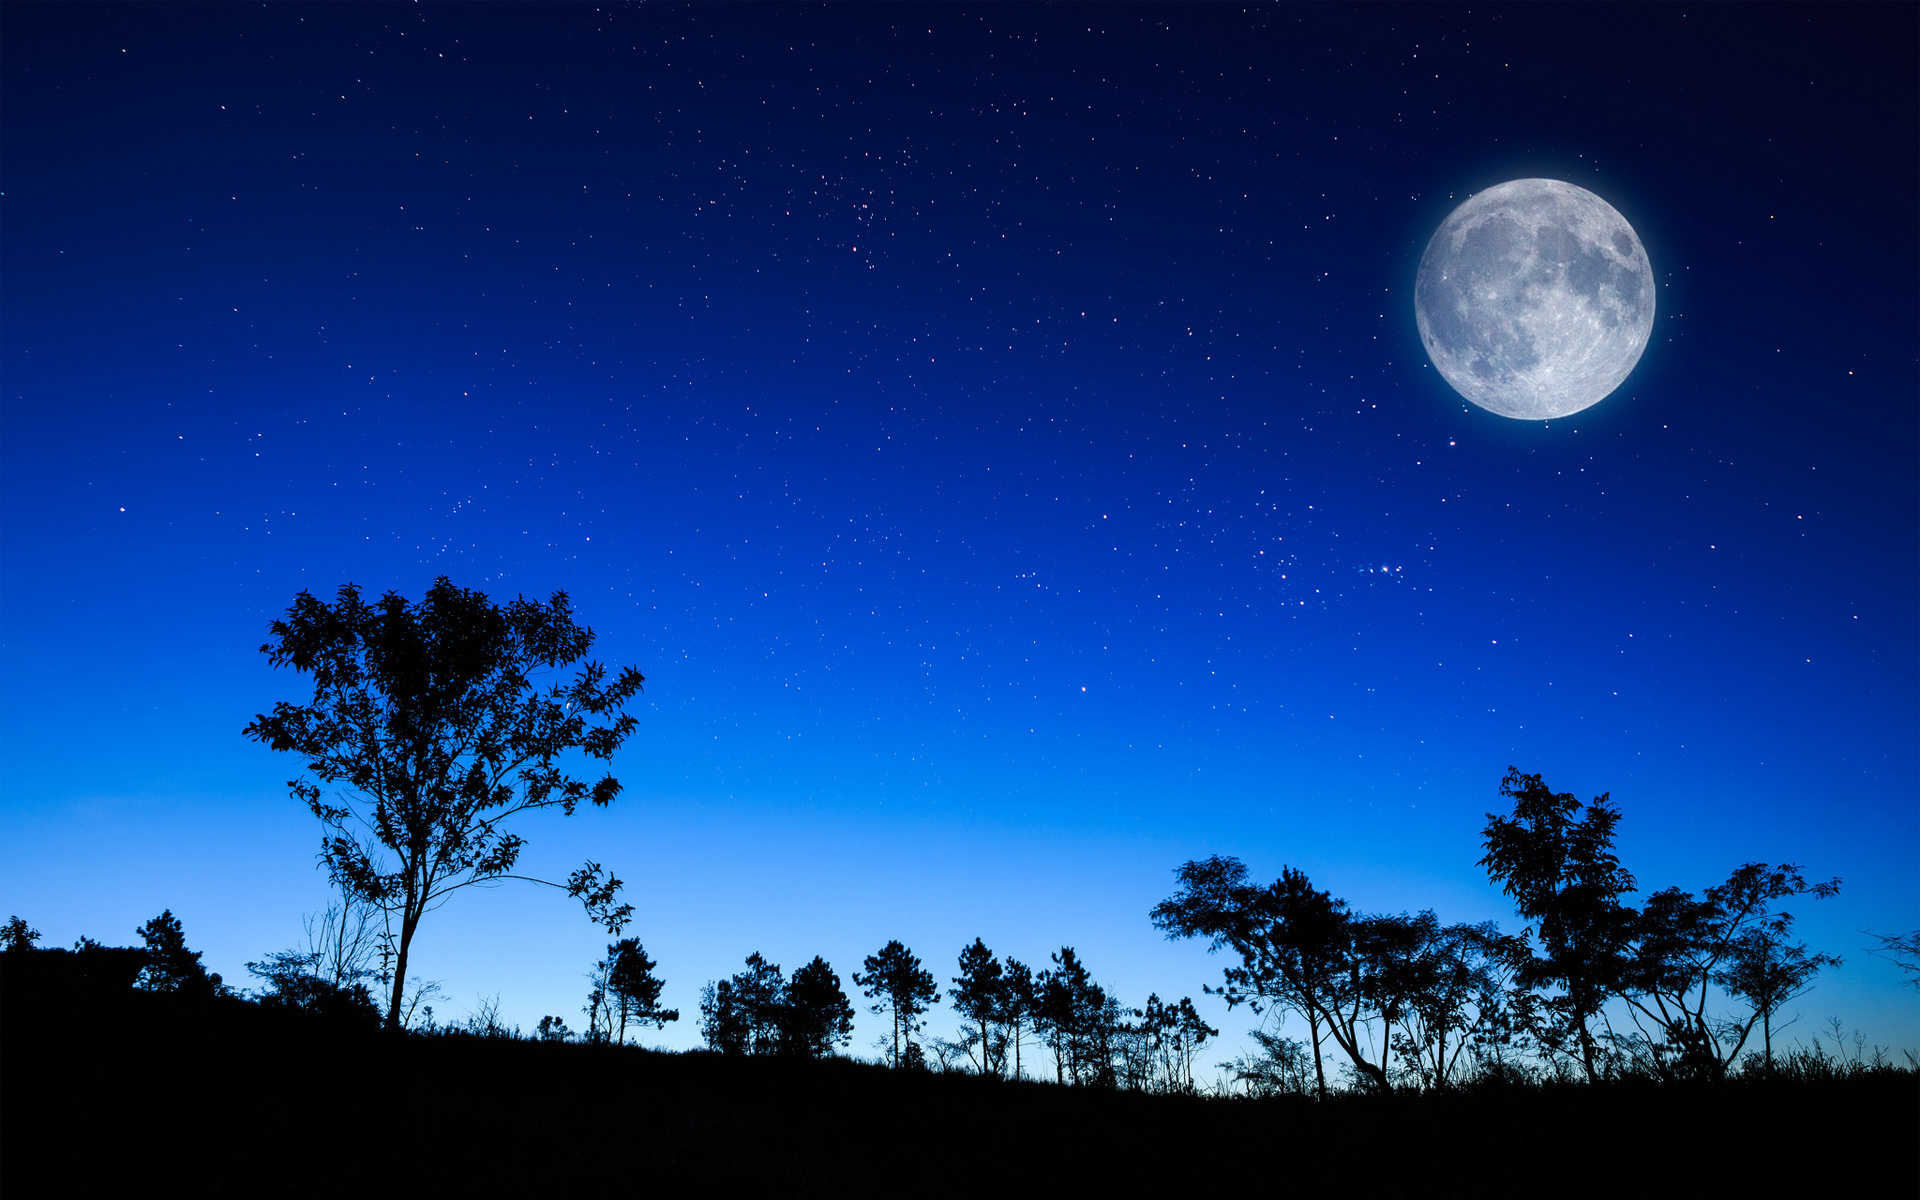 Night Sky Moon Hd Desktop